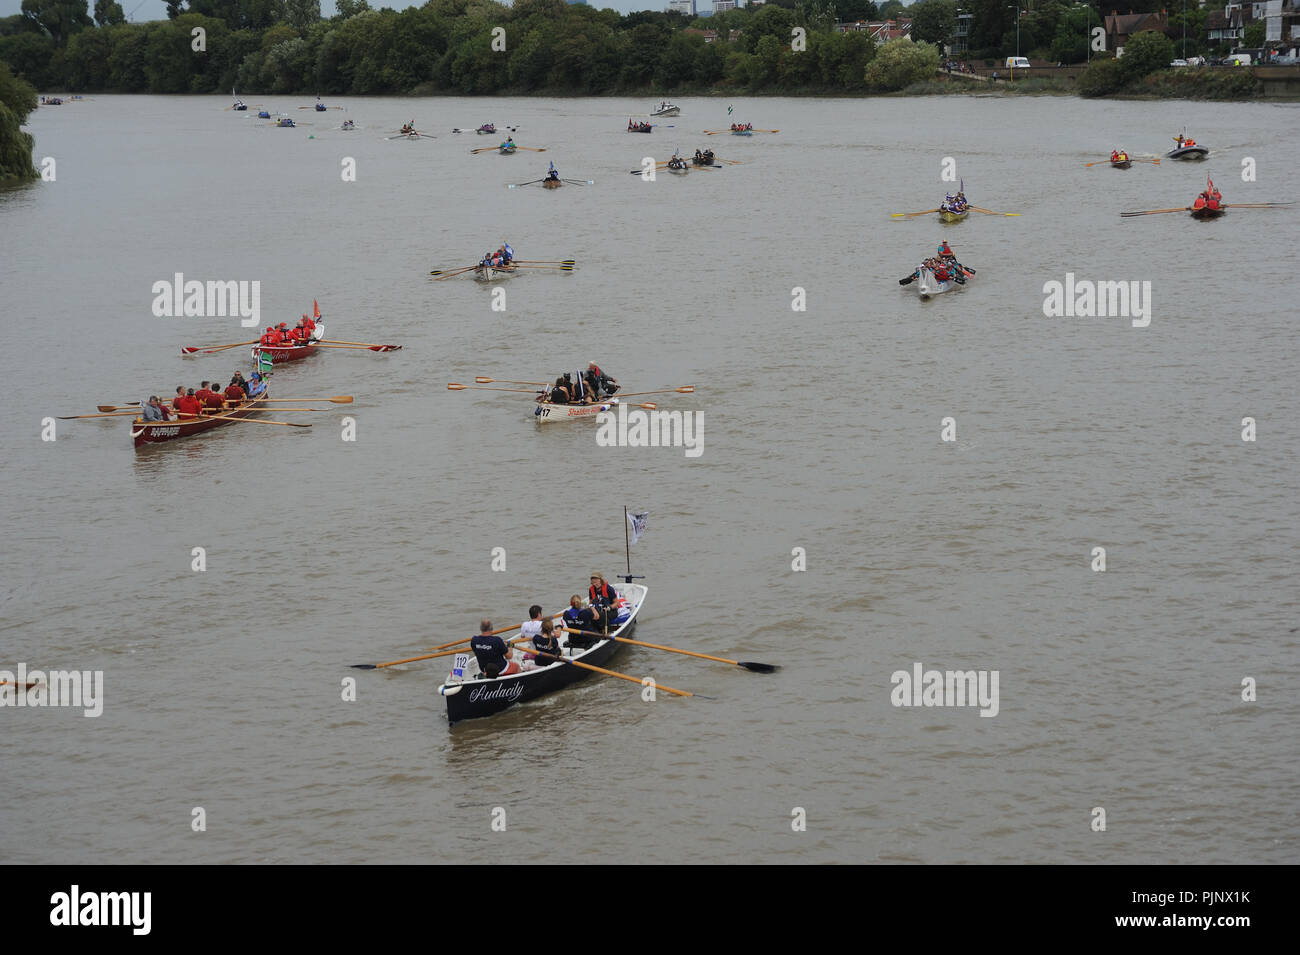 Competitors enjoy the camaraderie and competition in the Thames Great River Race, viewed from Barnes Bridge, SW13. - Stock Image